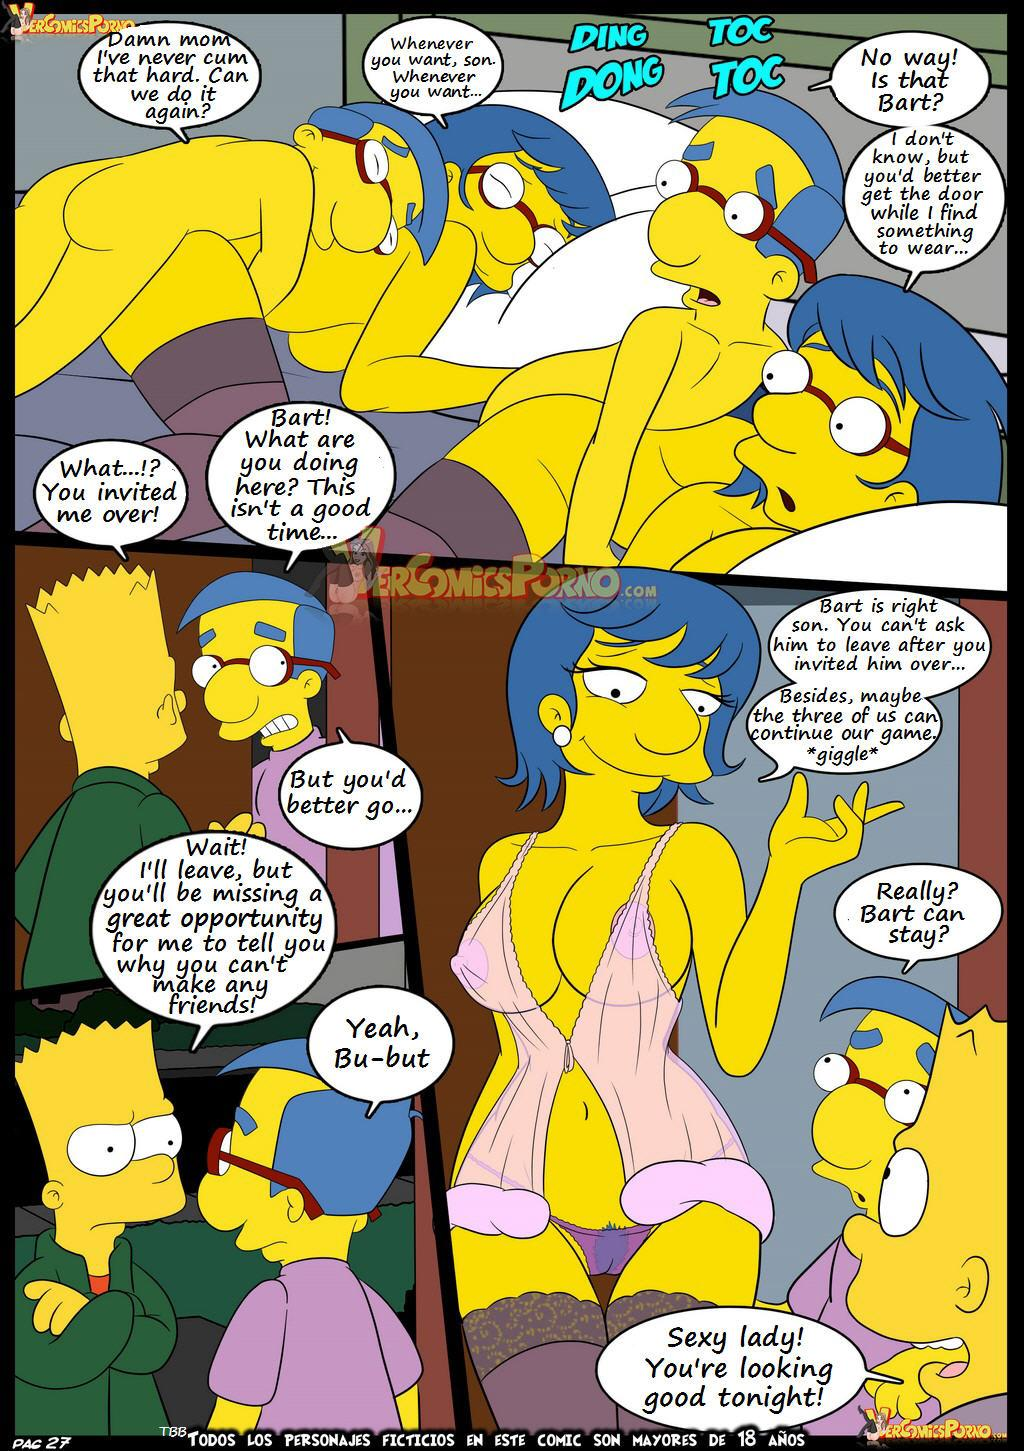 28 11 - The Simpsons. Part 6.